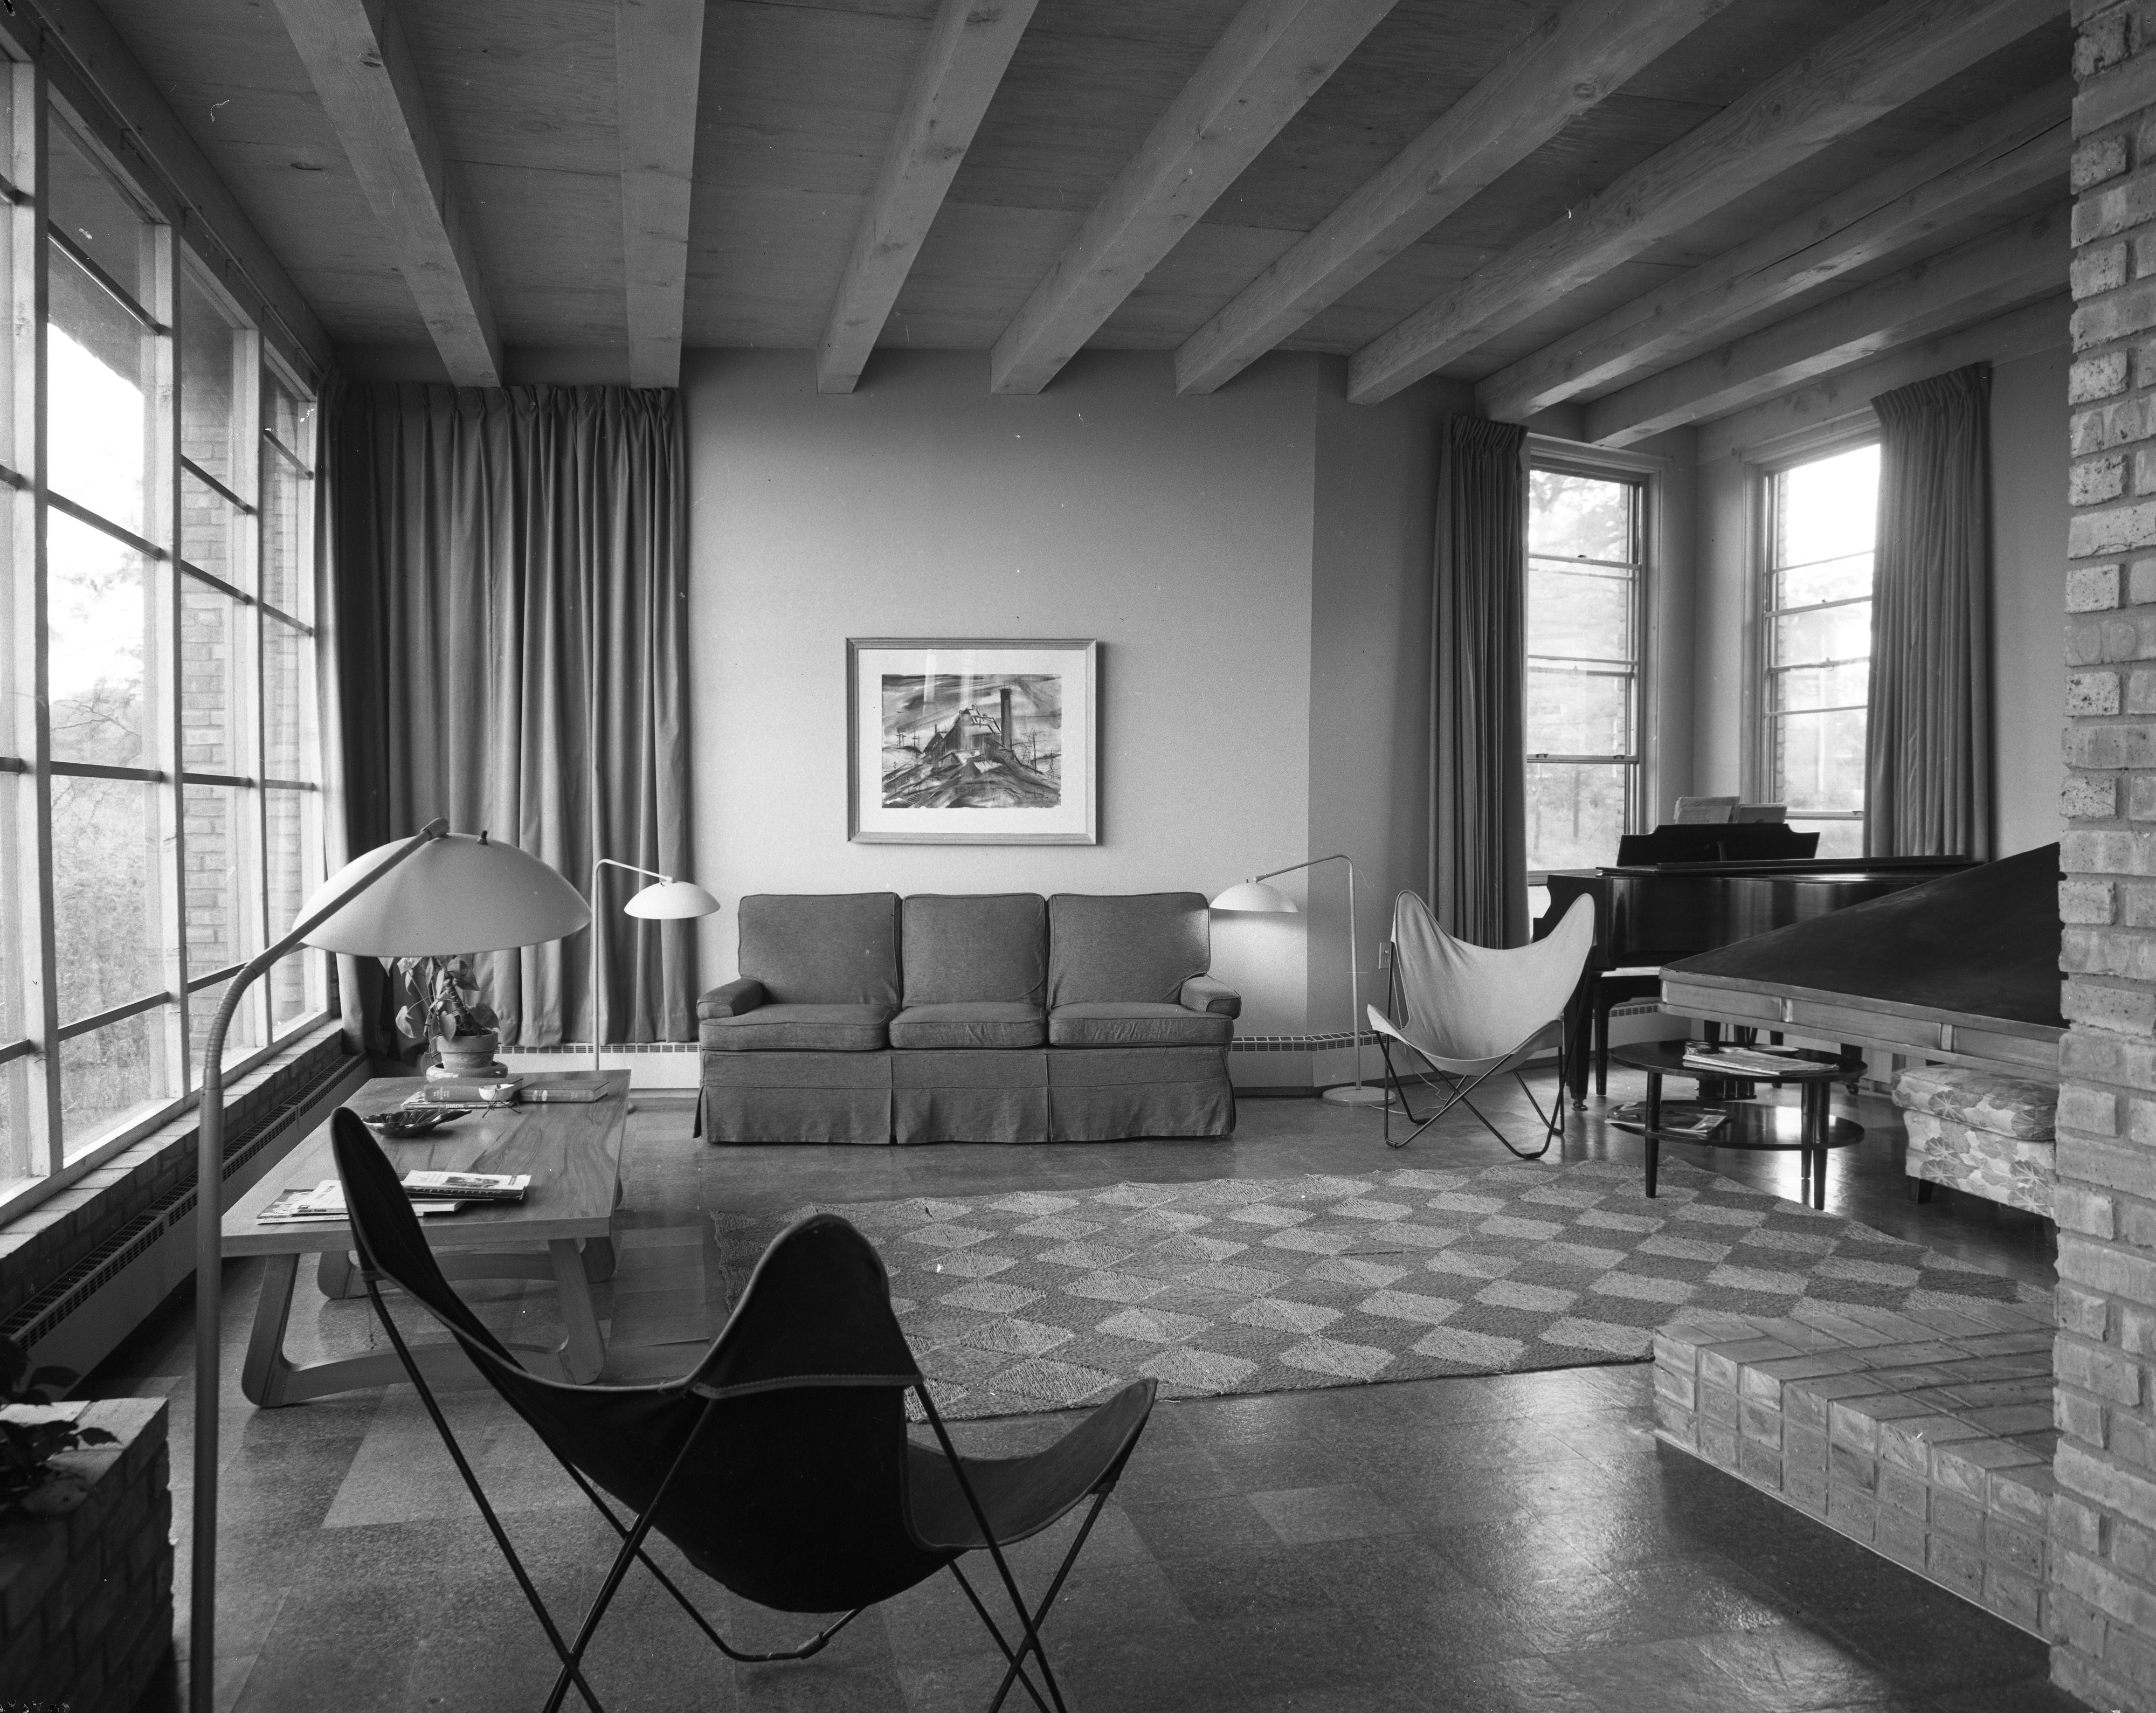 danish modern living room designing a small layout in heininger mid century home on huron view blvd may 1953